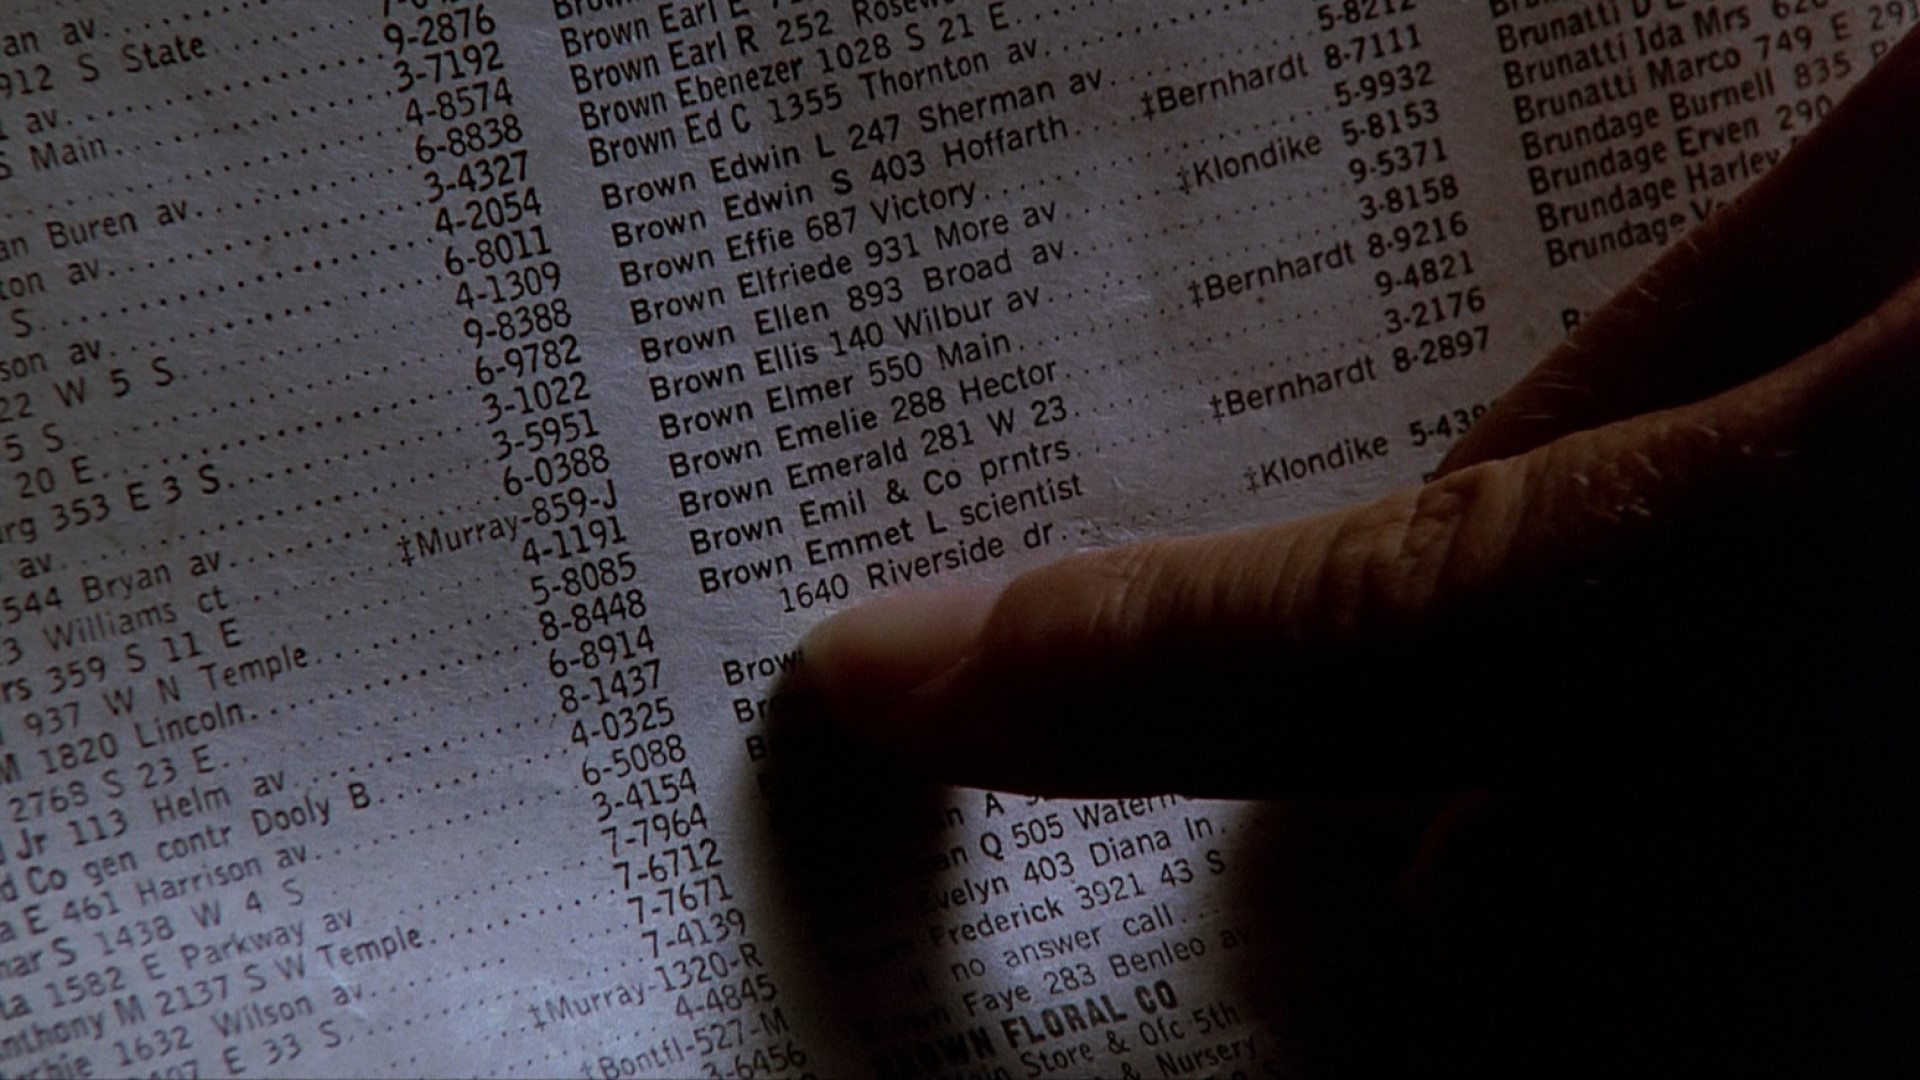 BACK TO THE FUTURE (1985) - Torn Phone Book Page - Image 5 of 8